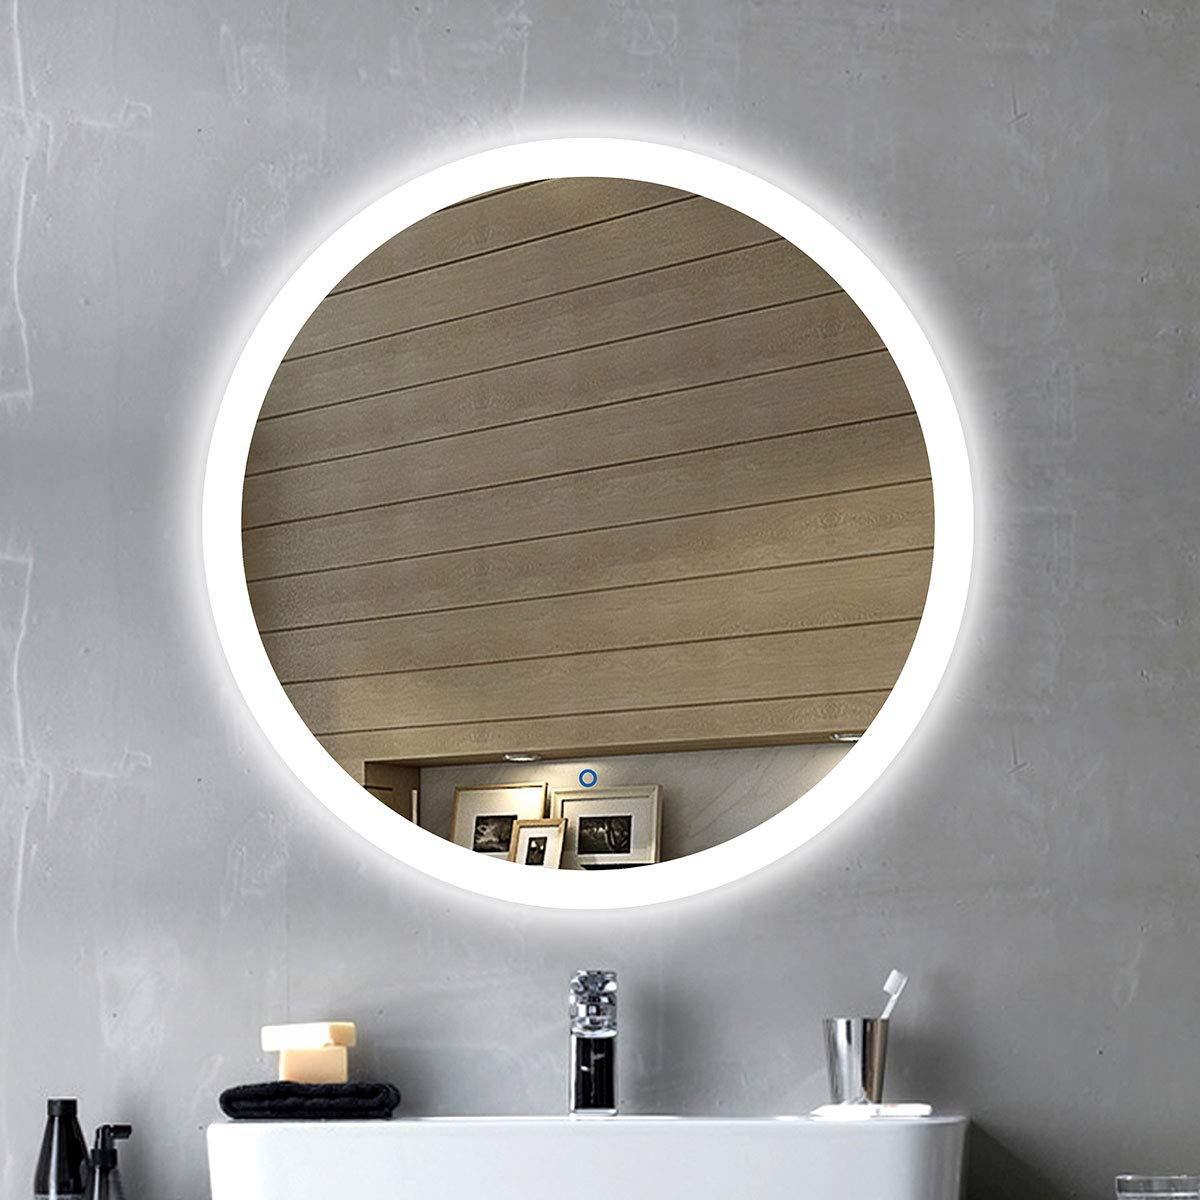 24 Round LED Wall Mounted Lighted Vanity Bathroom Silvered Illuminated Mirror with Touch Button (B-CL065-1) Decoraport